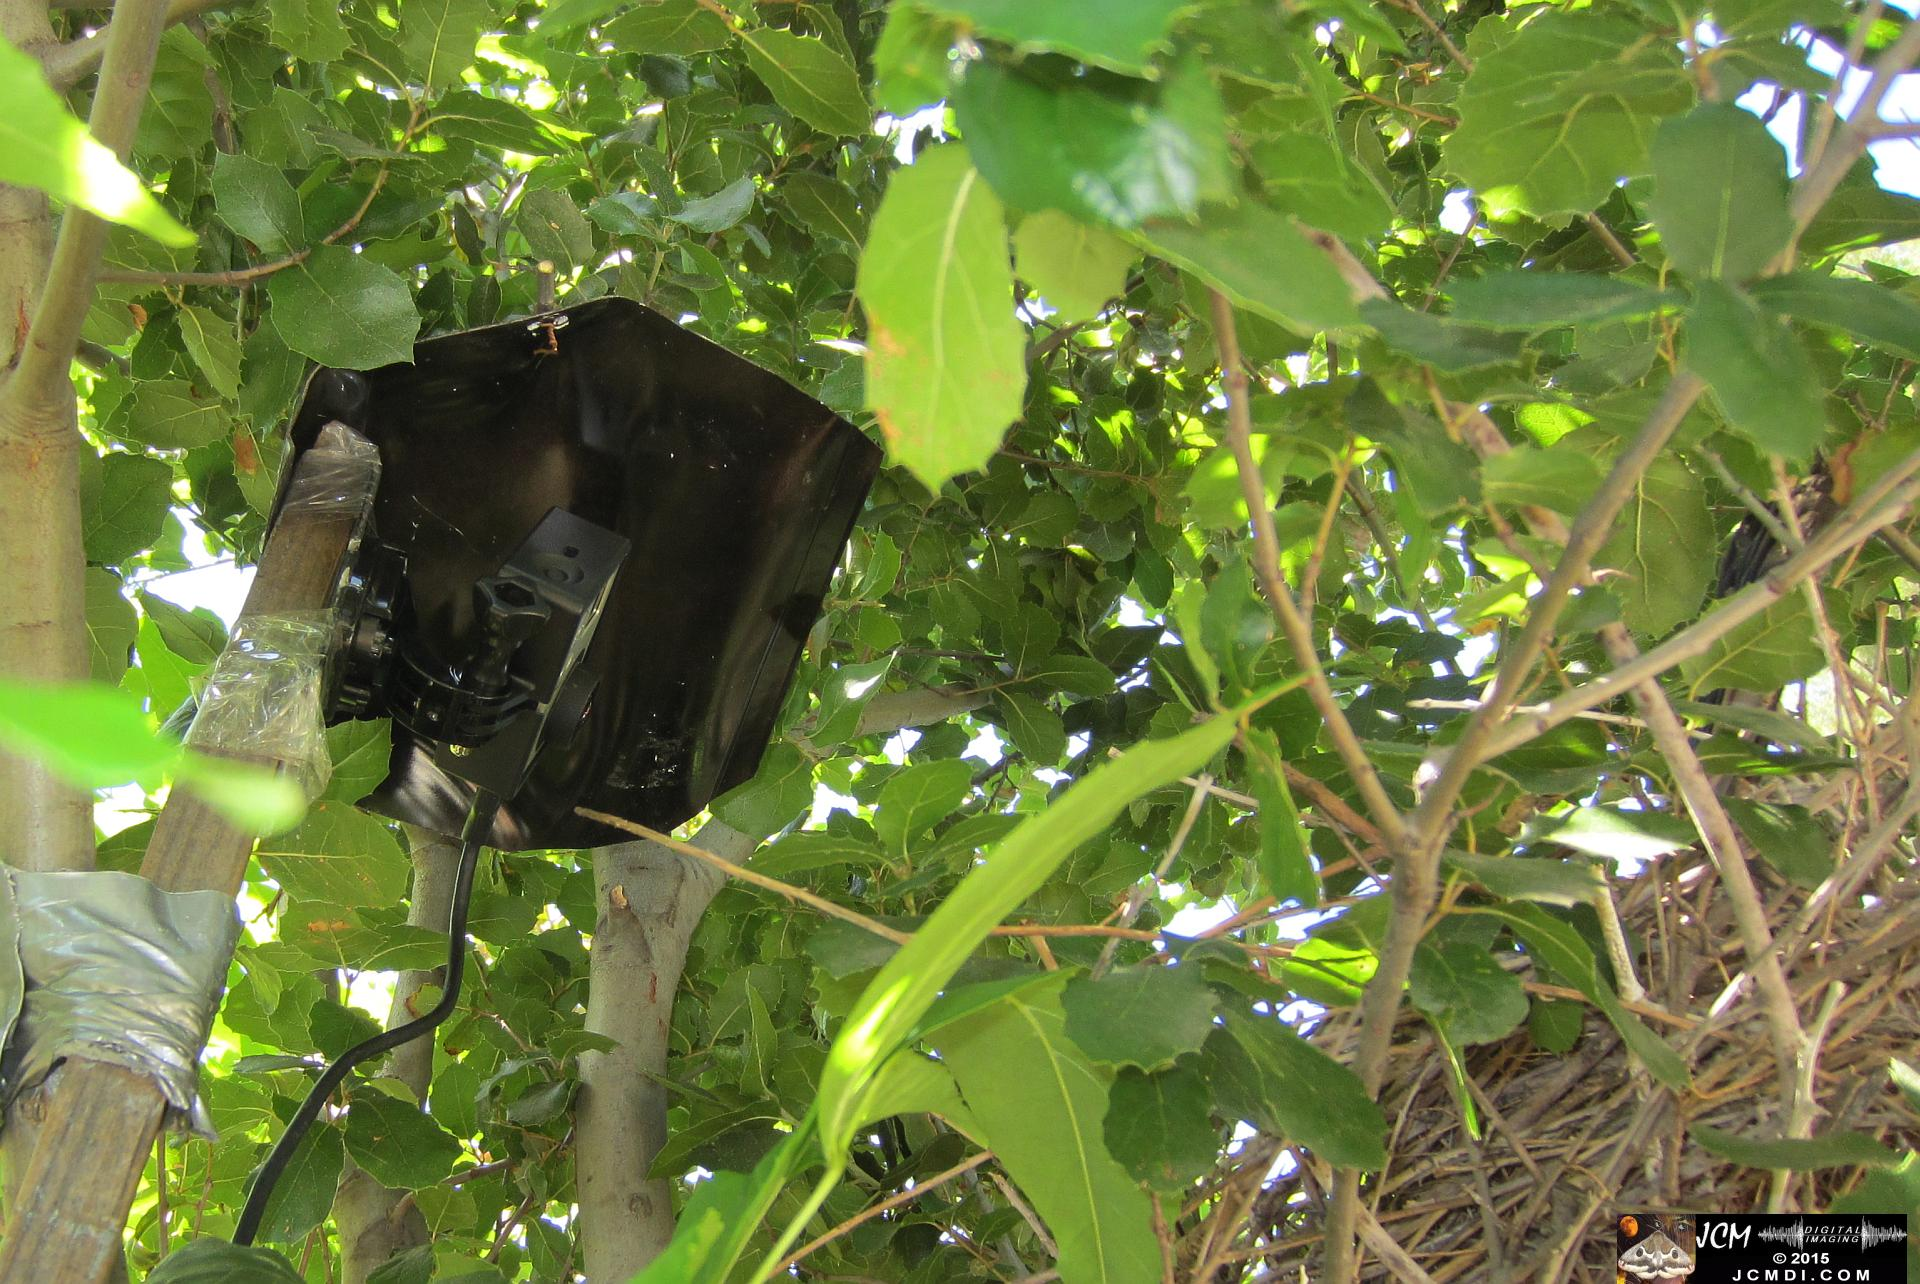 home-made GoPro wildlife camera rig and nest